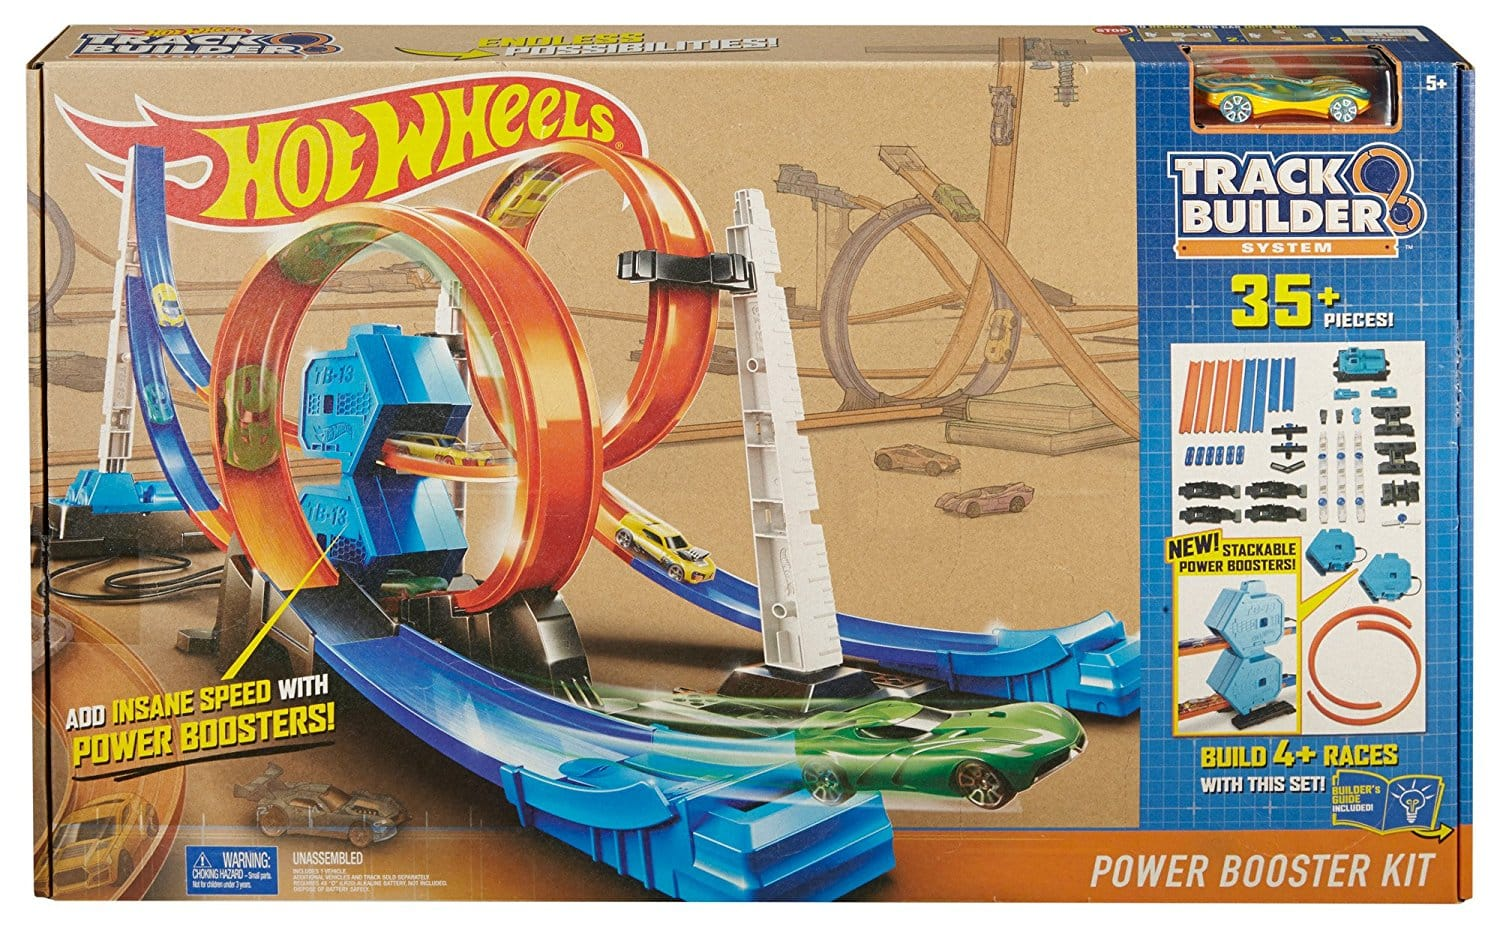 Piste Hot Wheels, le Double Super Lanceur